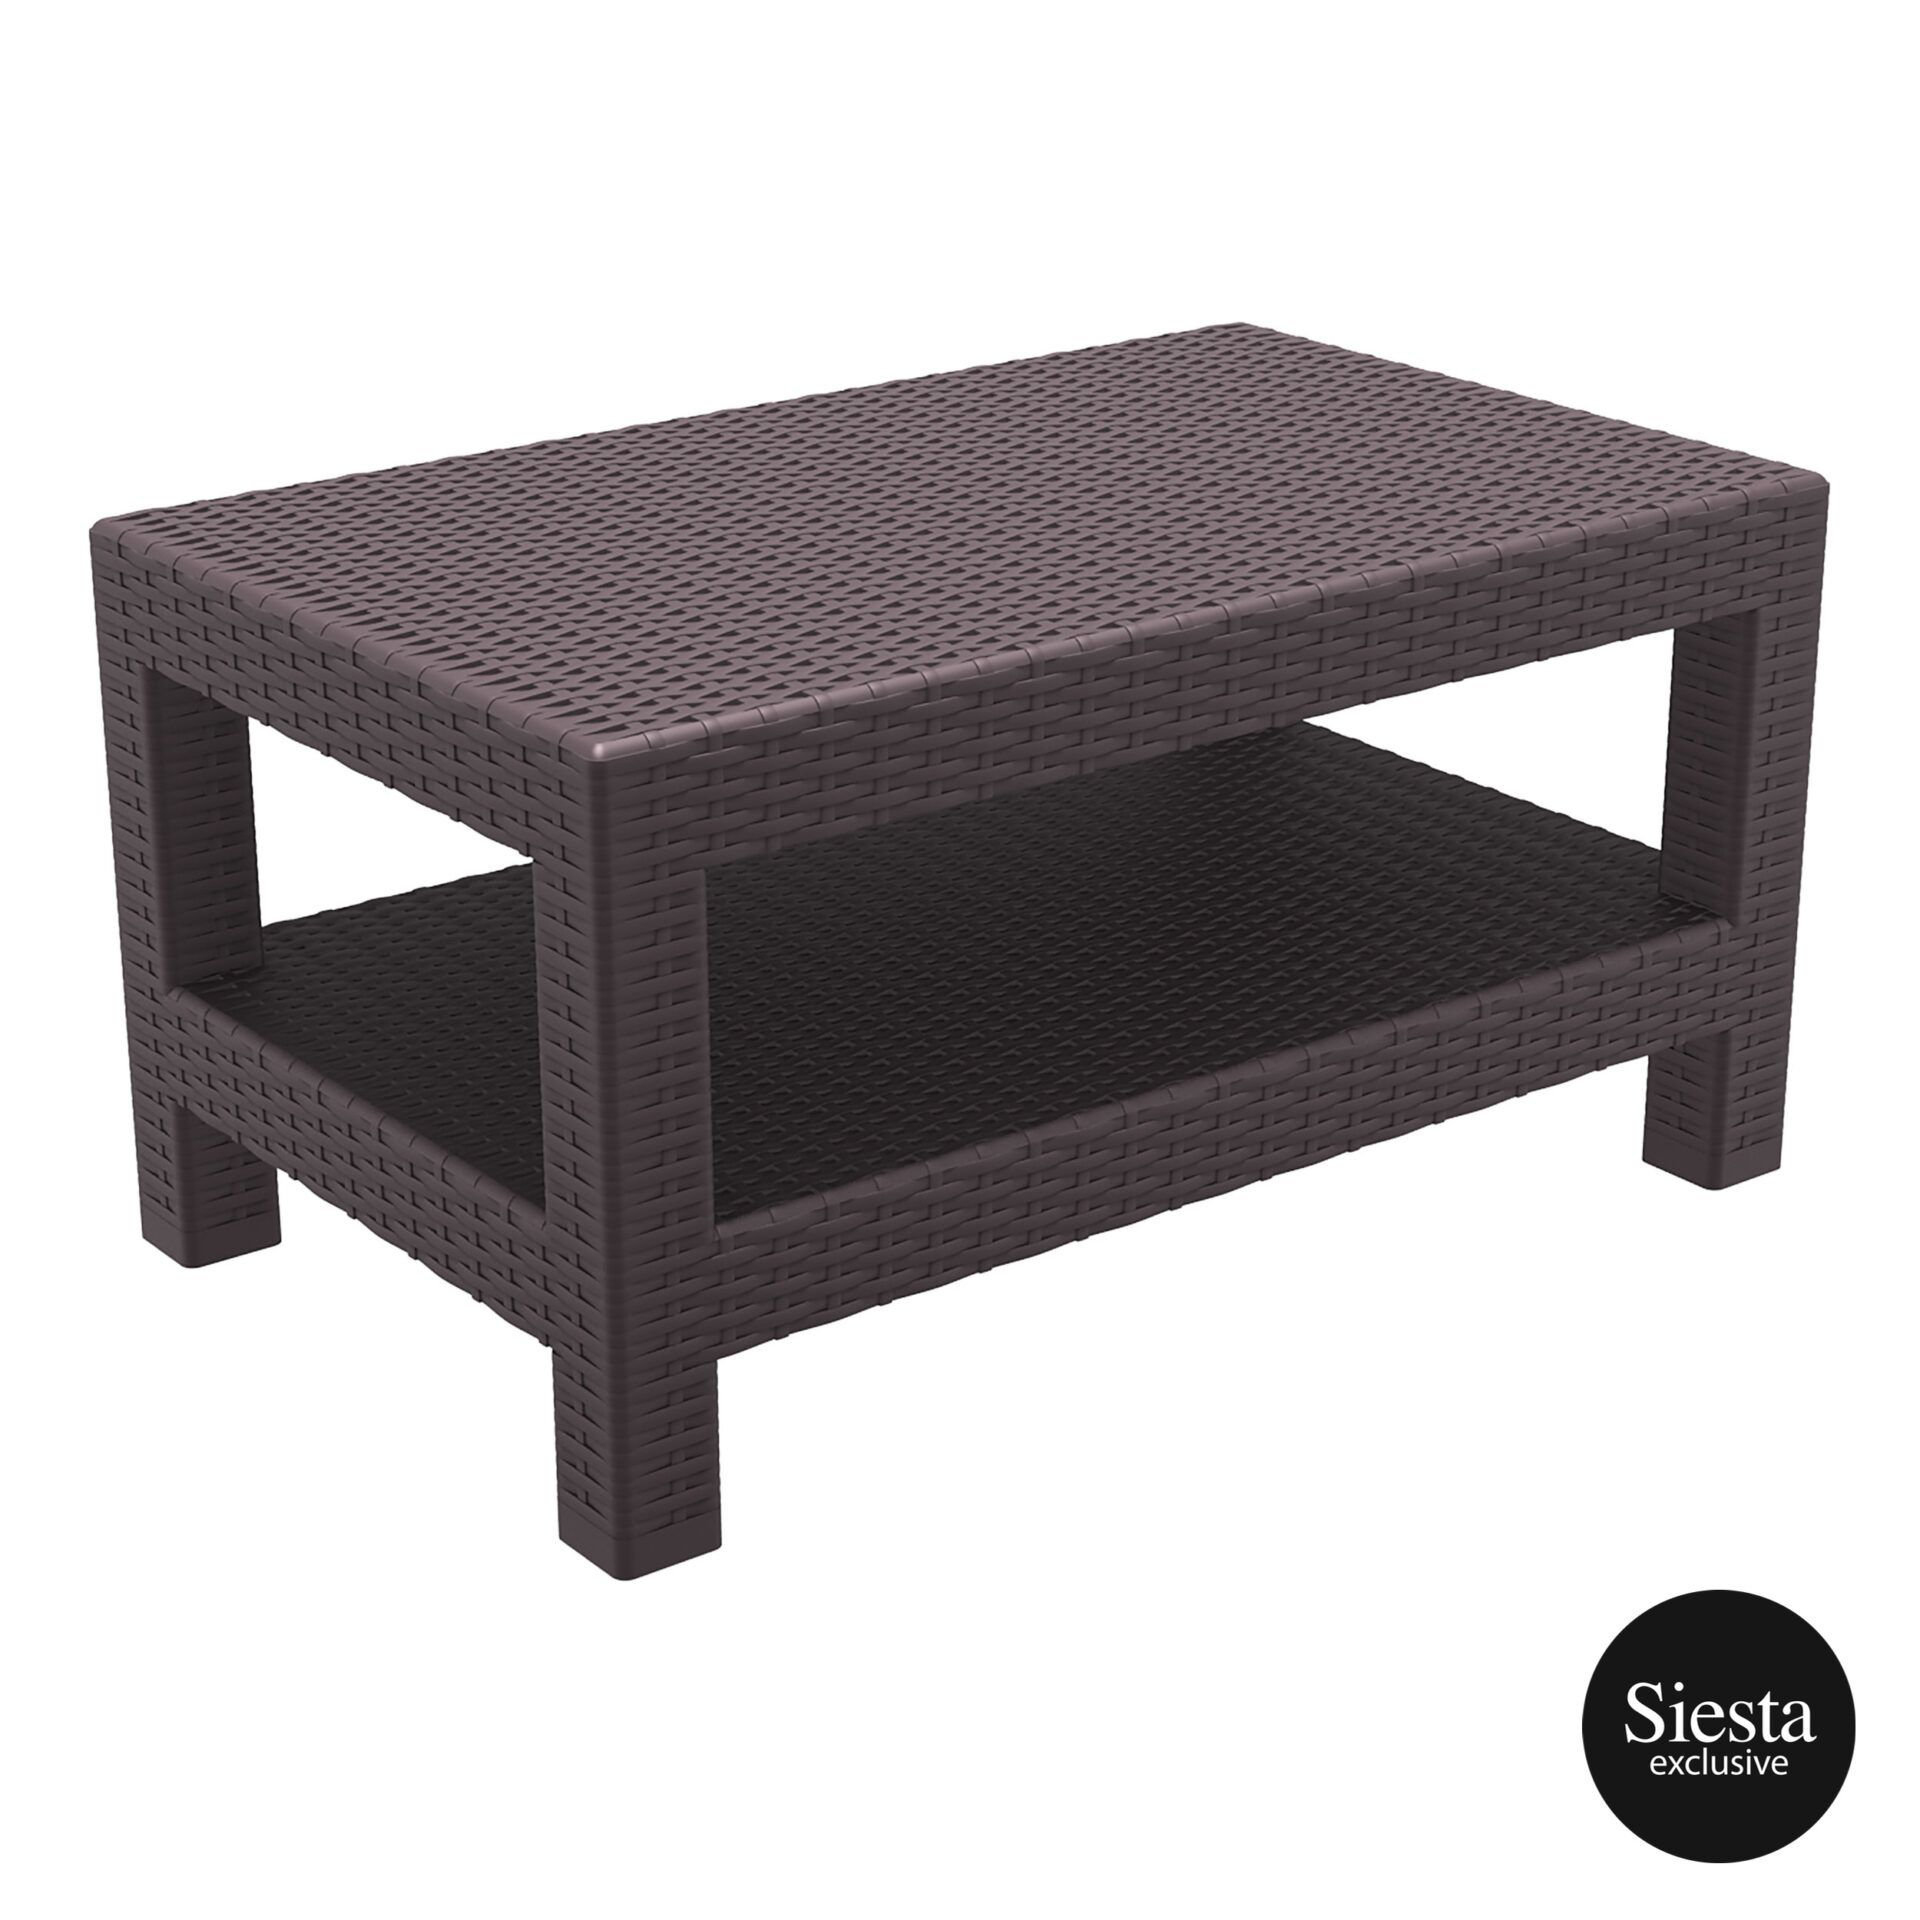 Resin Rattan Monaco Lounge Table brown front side